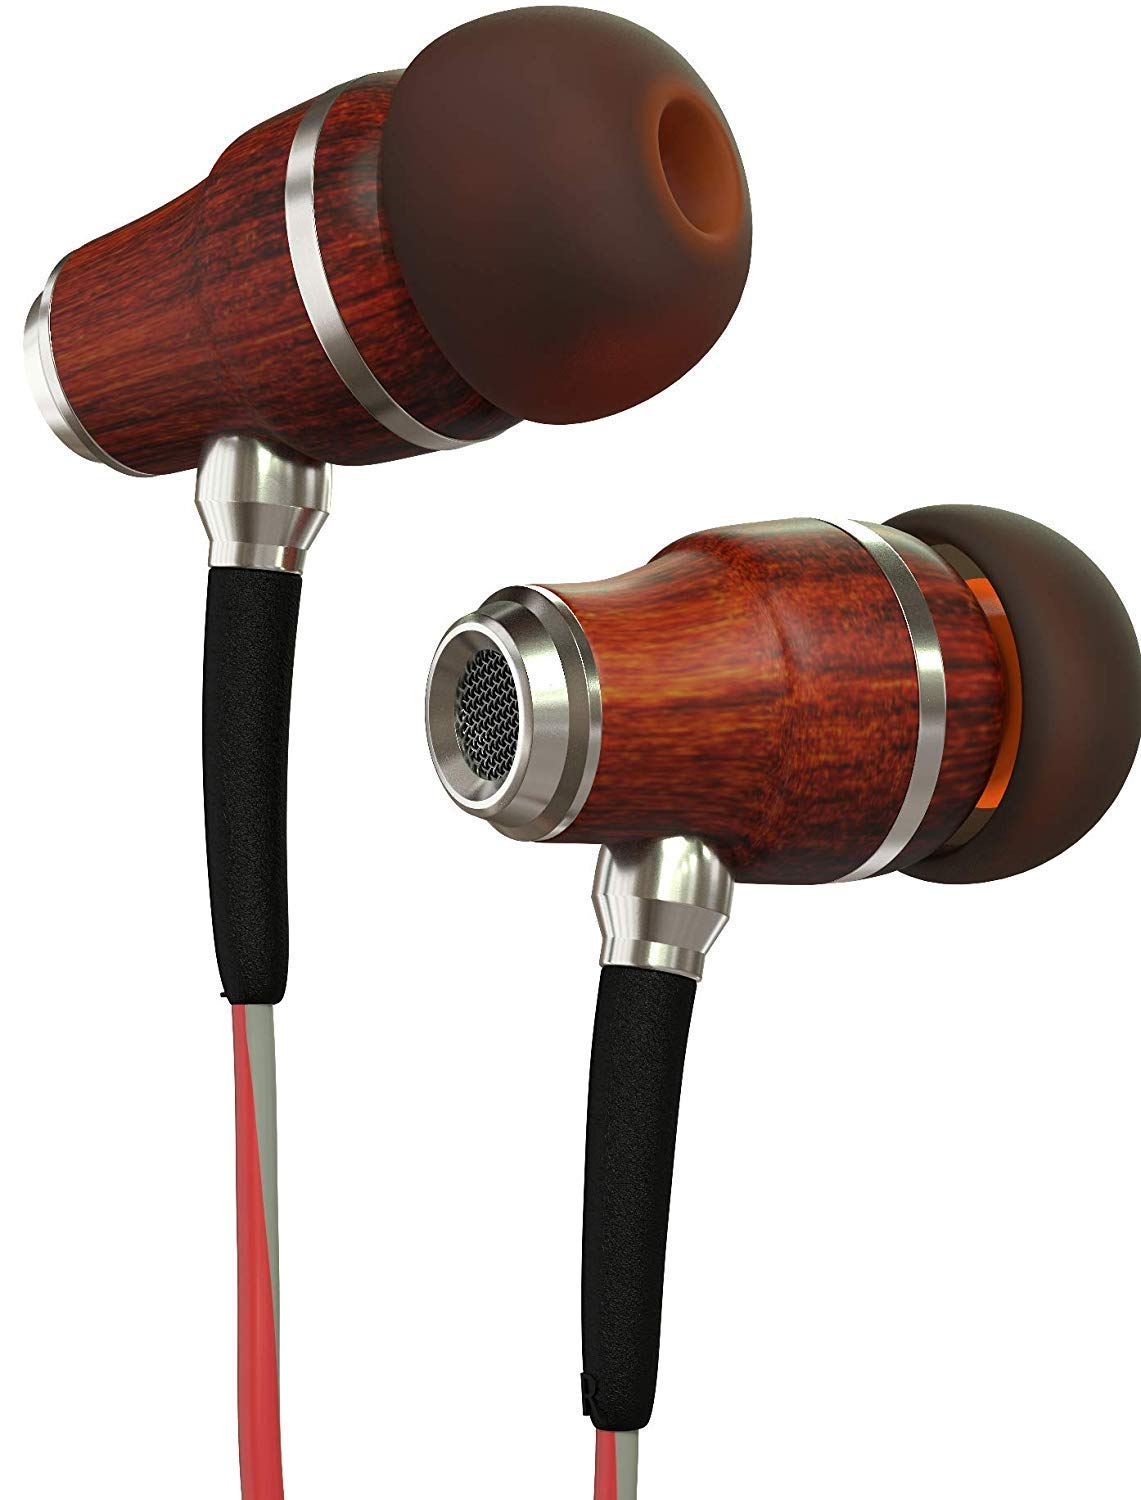 Symphonized NRG 3.0 Earbuds in-Ear Headphones, Wood Noise-isolating Earphones with Microphone Volume Control Crimson Red Hazy Gray